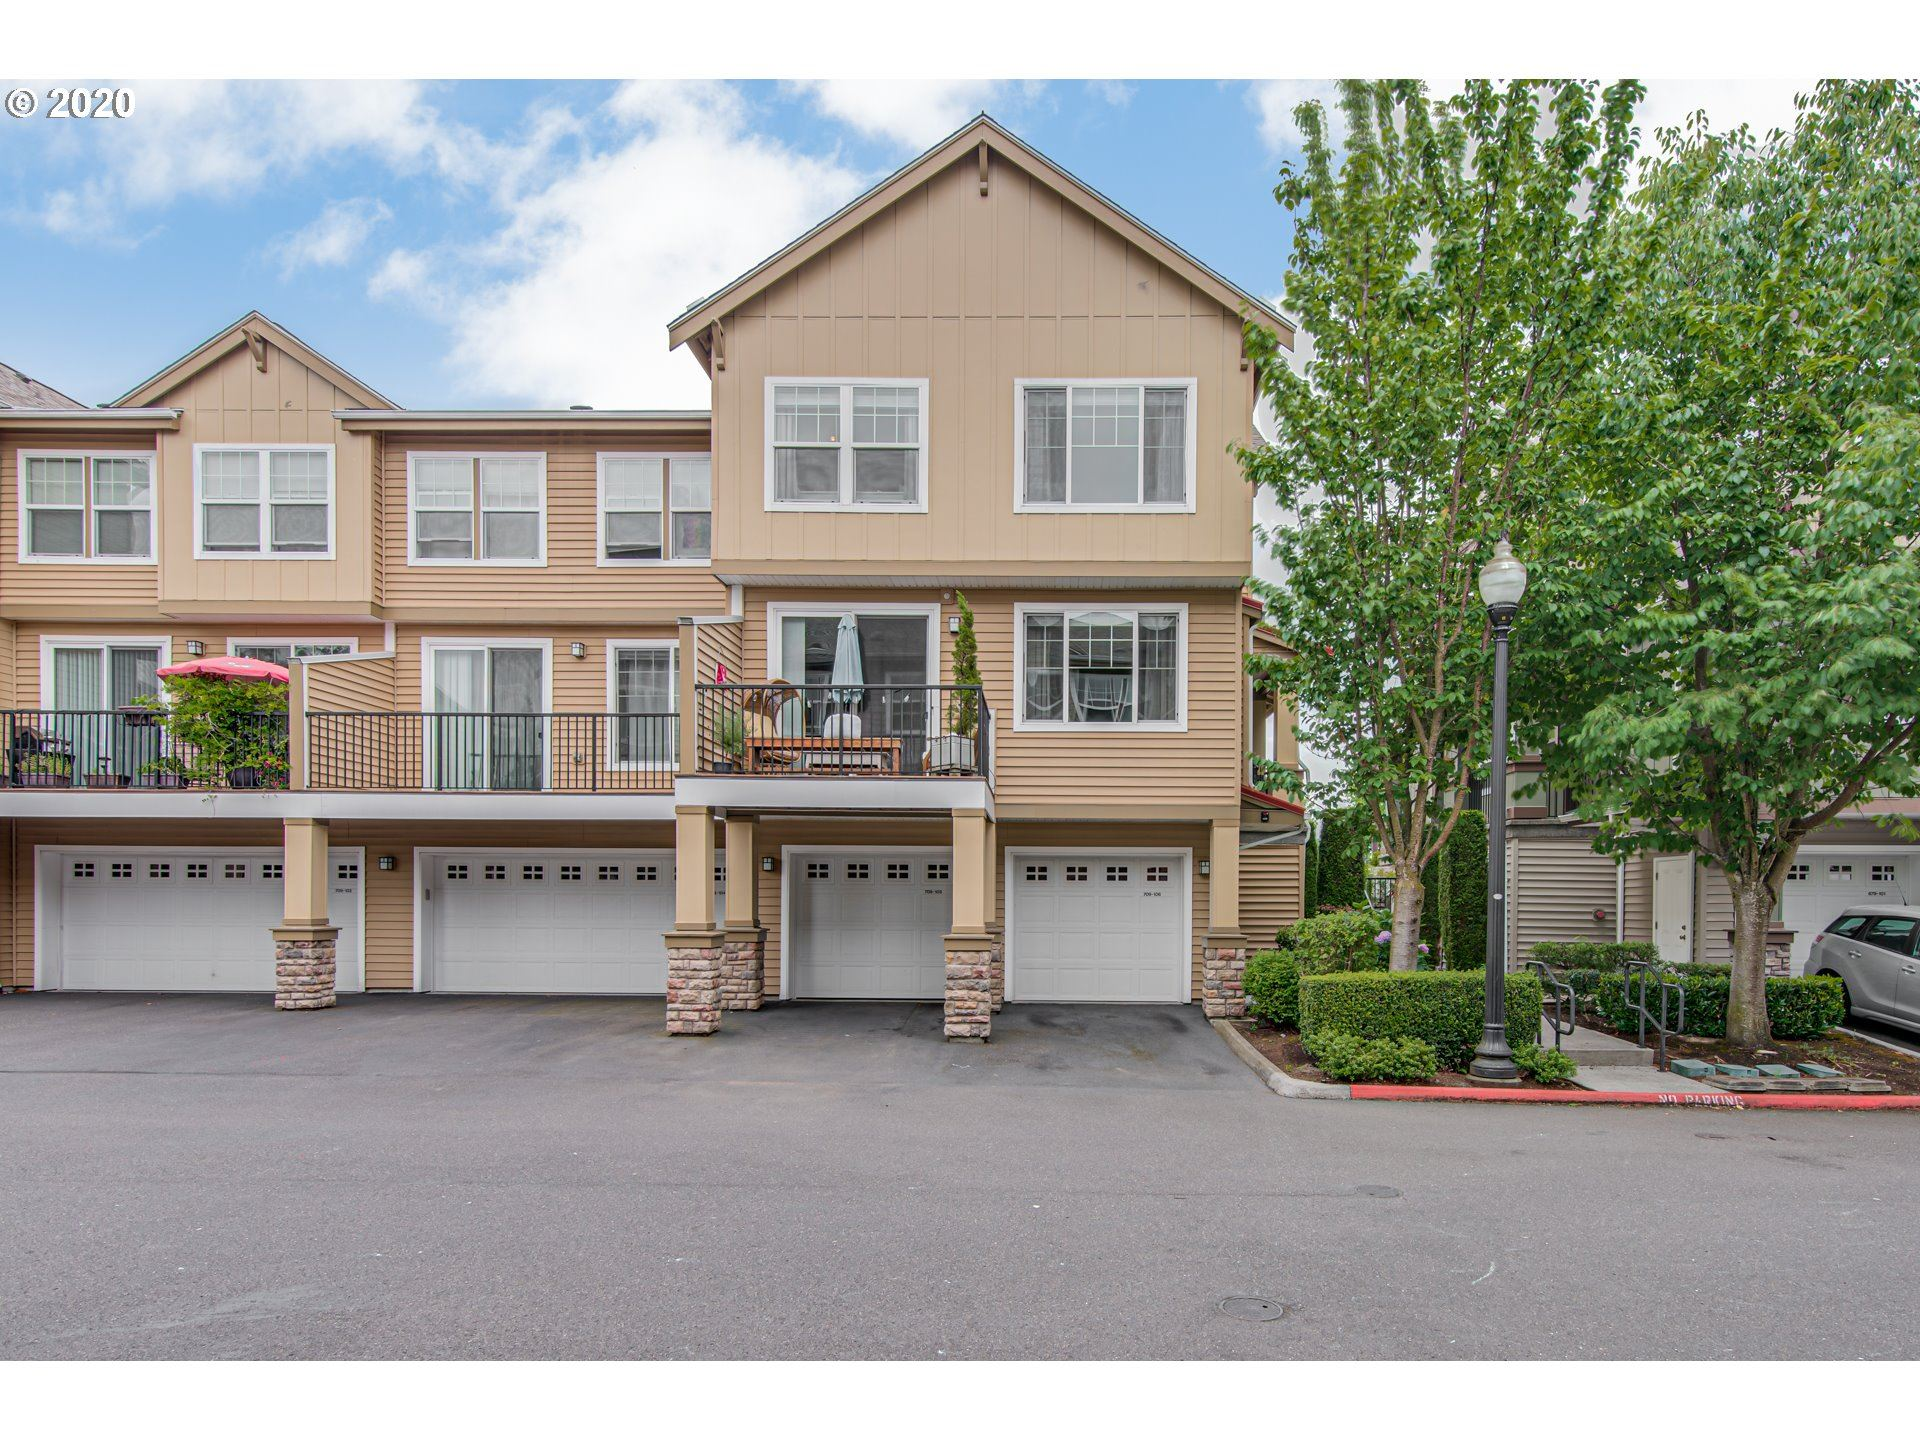 709 NW 118TH AVE #106, Portland, OR 97229 - MLS#: 20425869